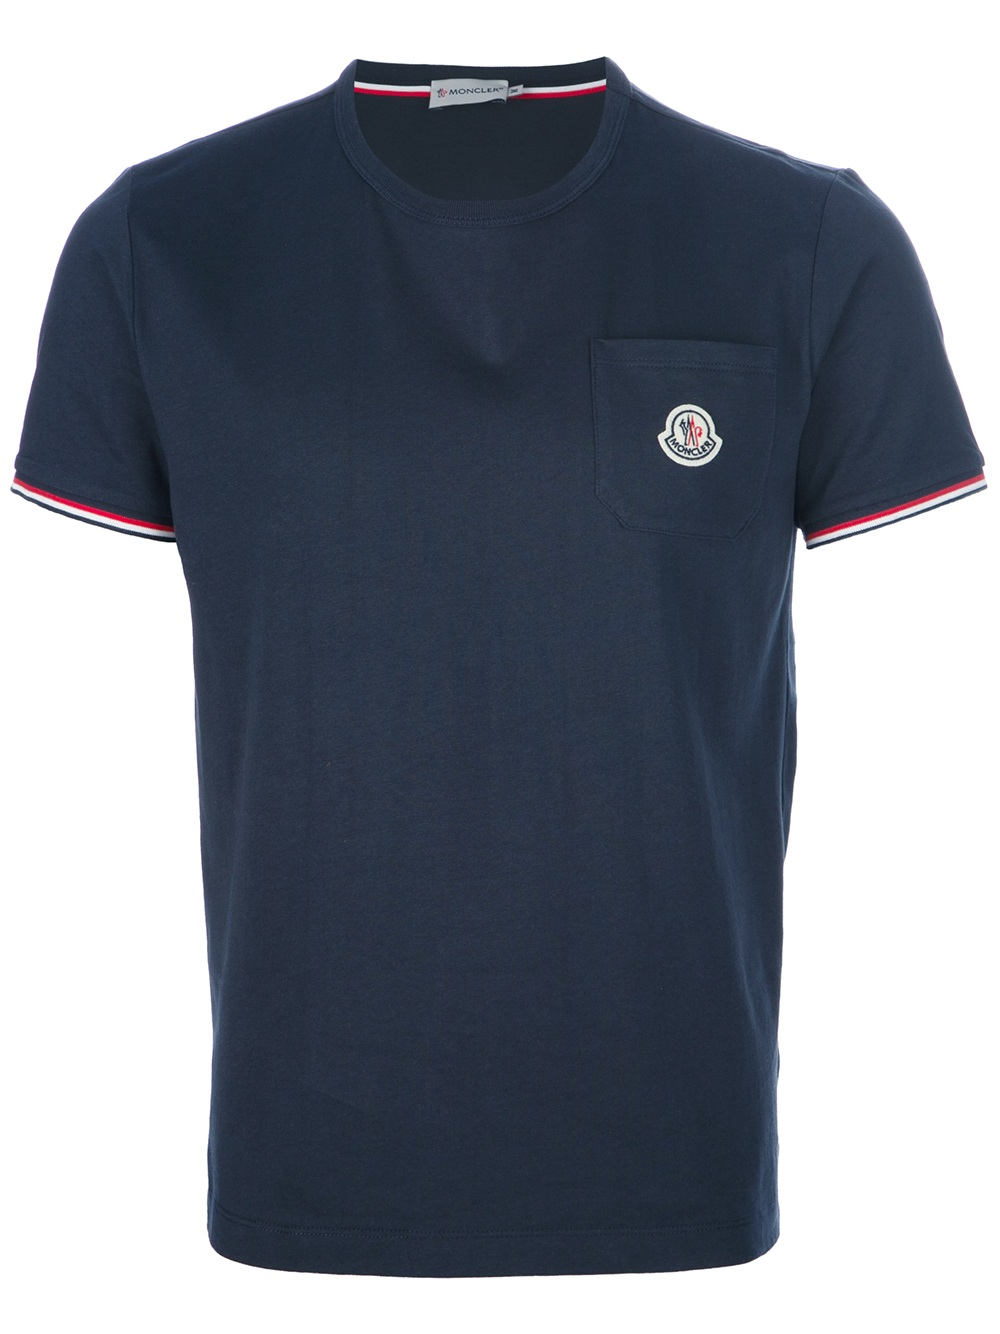 Branded Men Shirts Images For Cheap Experts